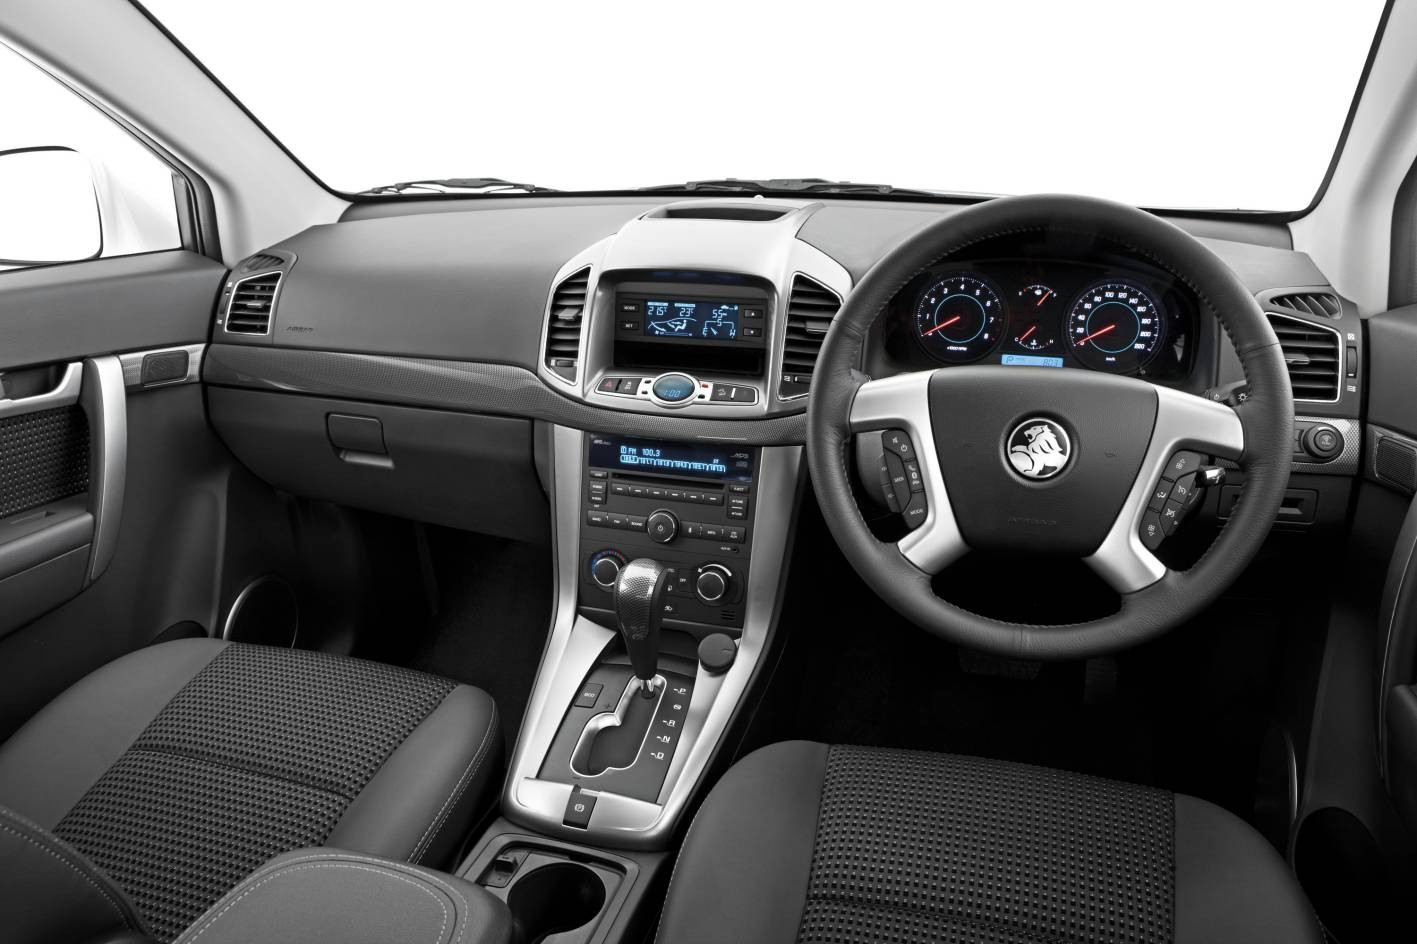 2012 Holden Captiva #16